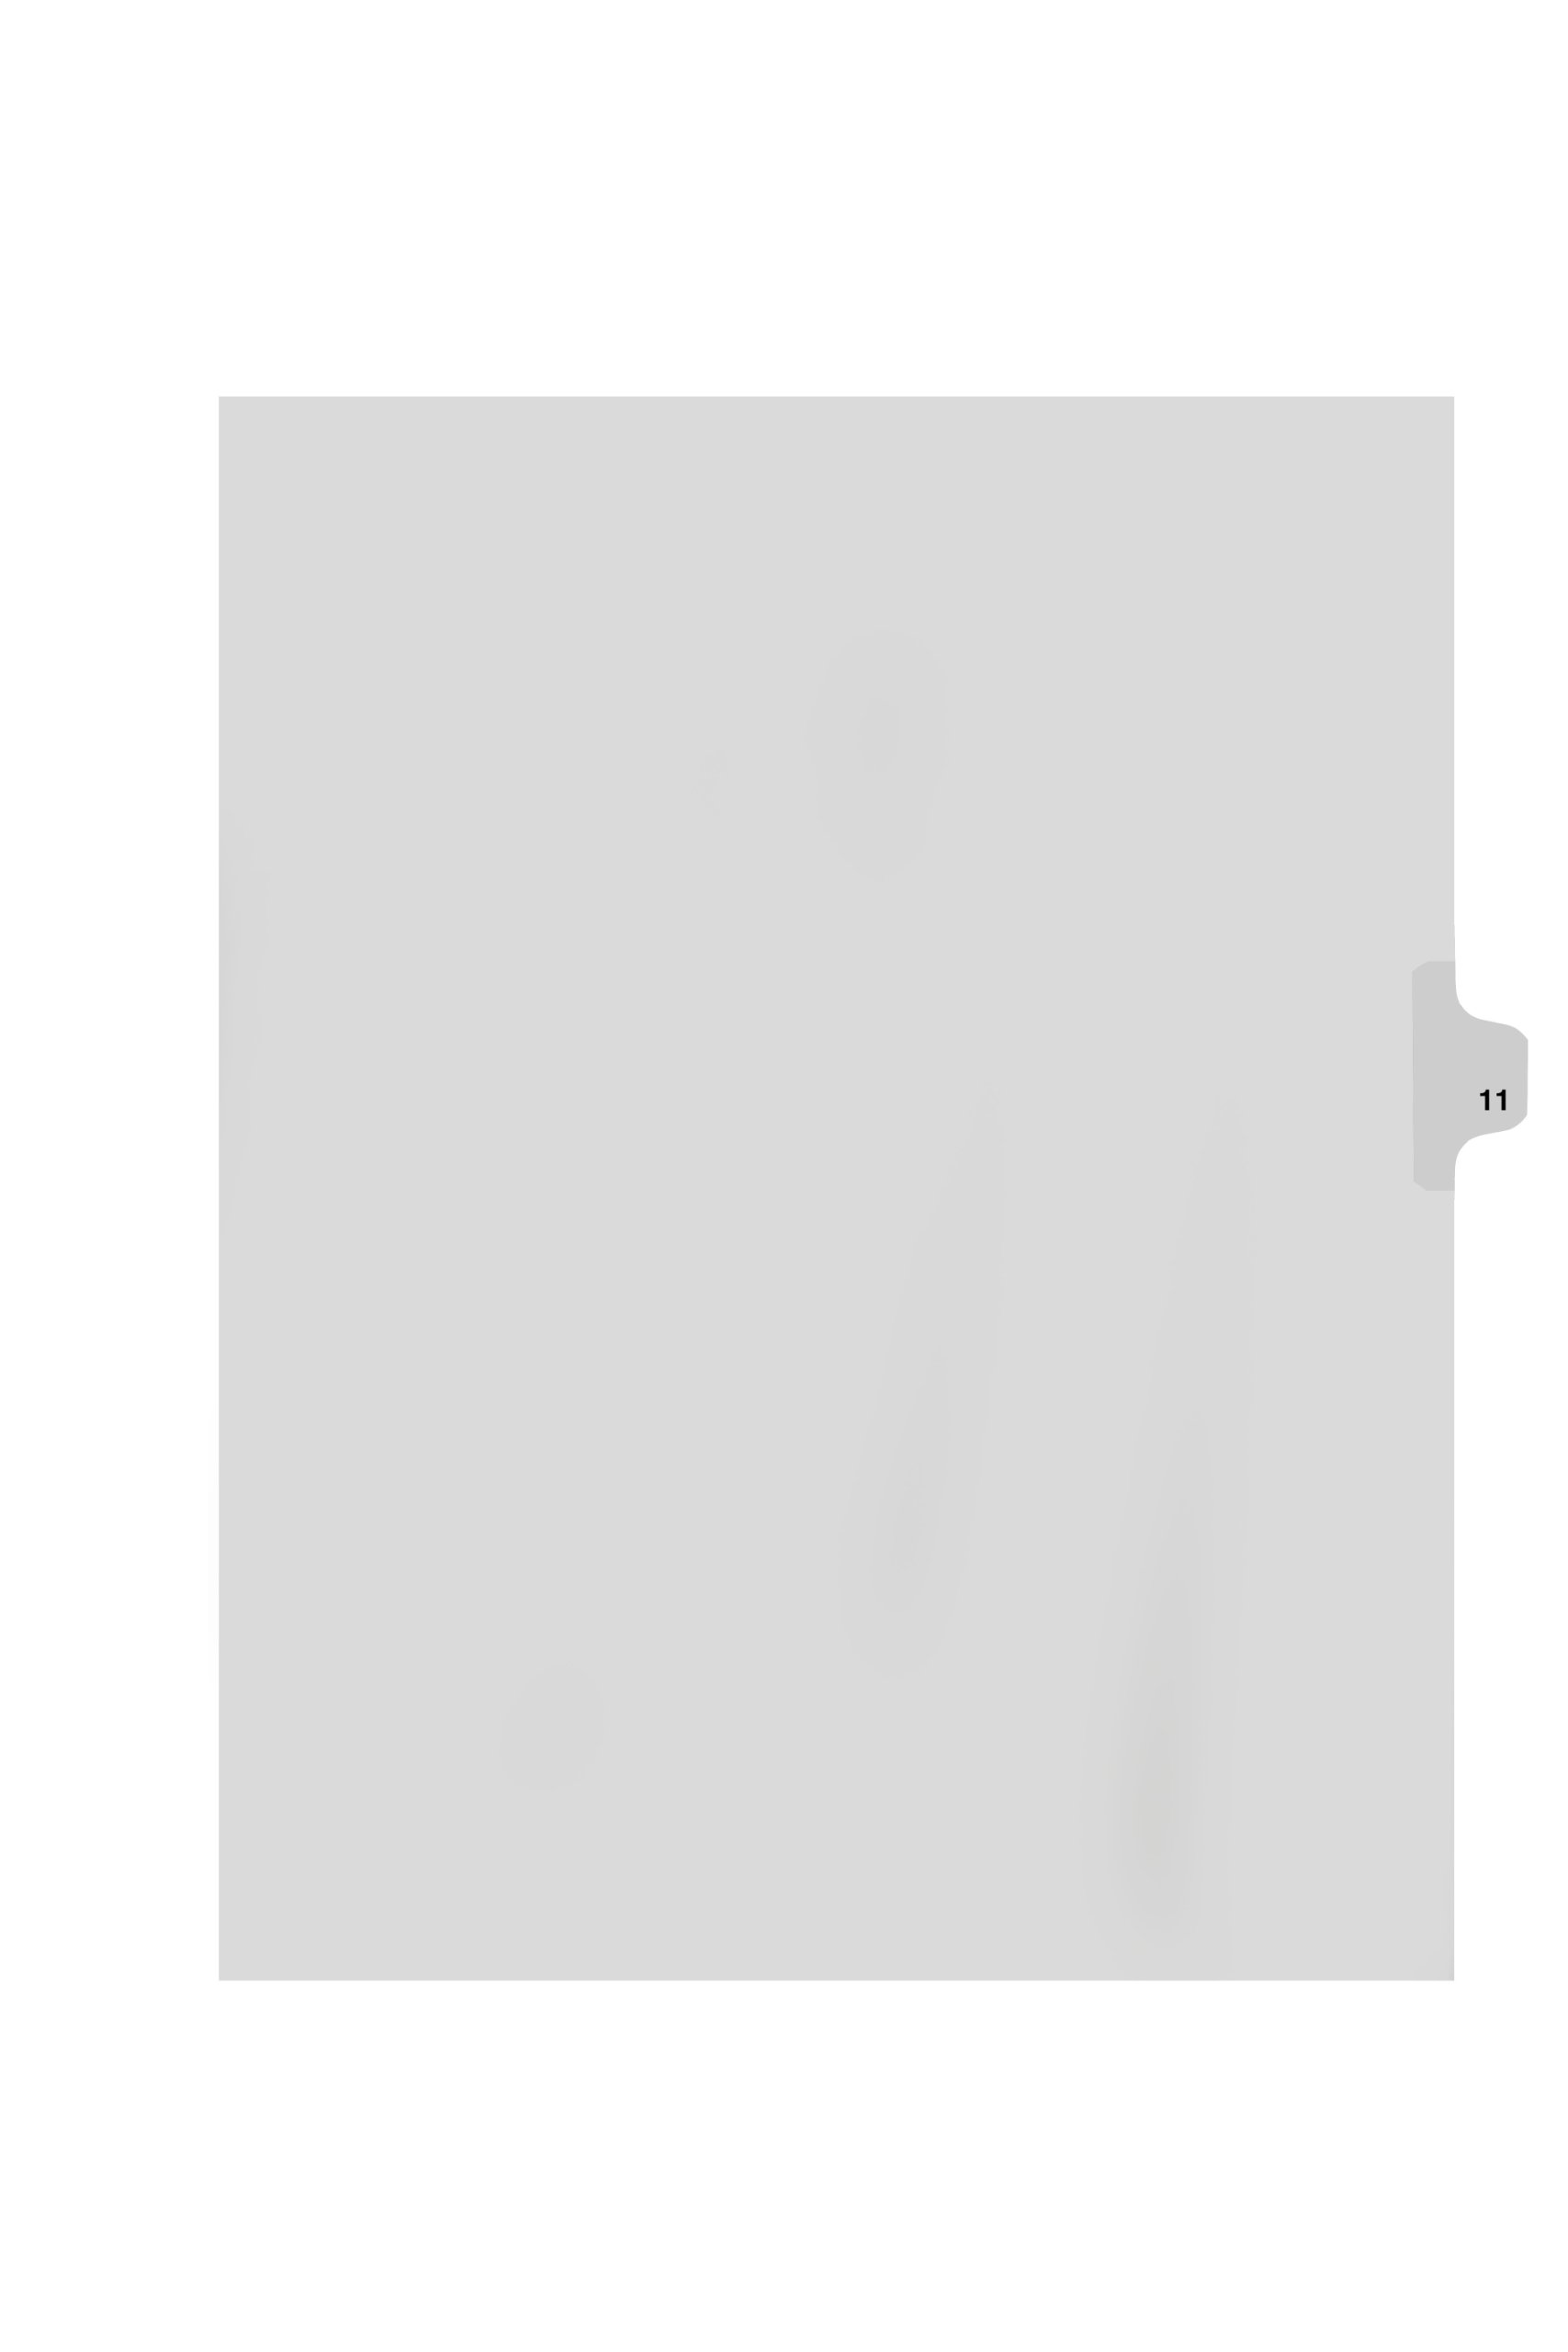 Kleer-Fax Letter Size Individual Number Index Dividers, Side Tab, 1/25th Cut, Number 11, 25 Sheets per Pack, White (81121)